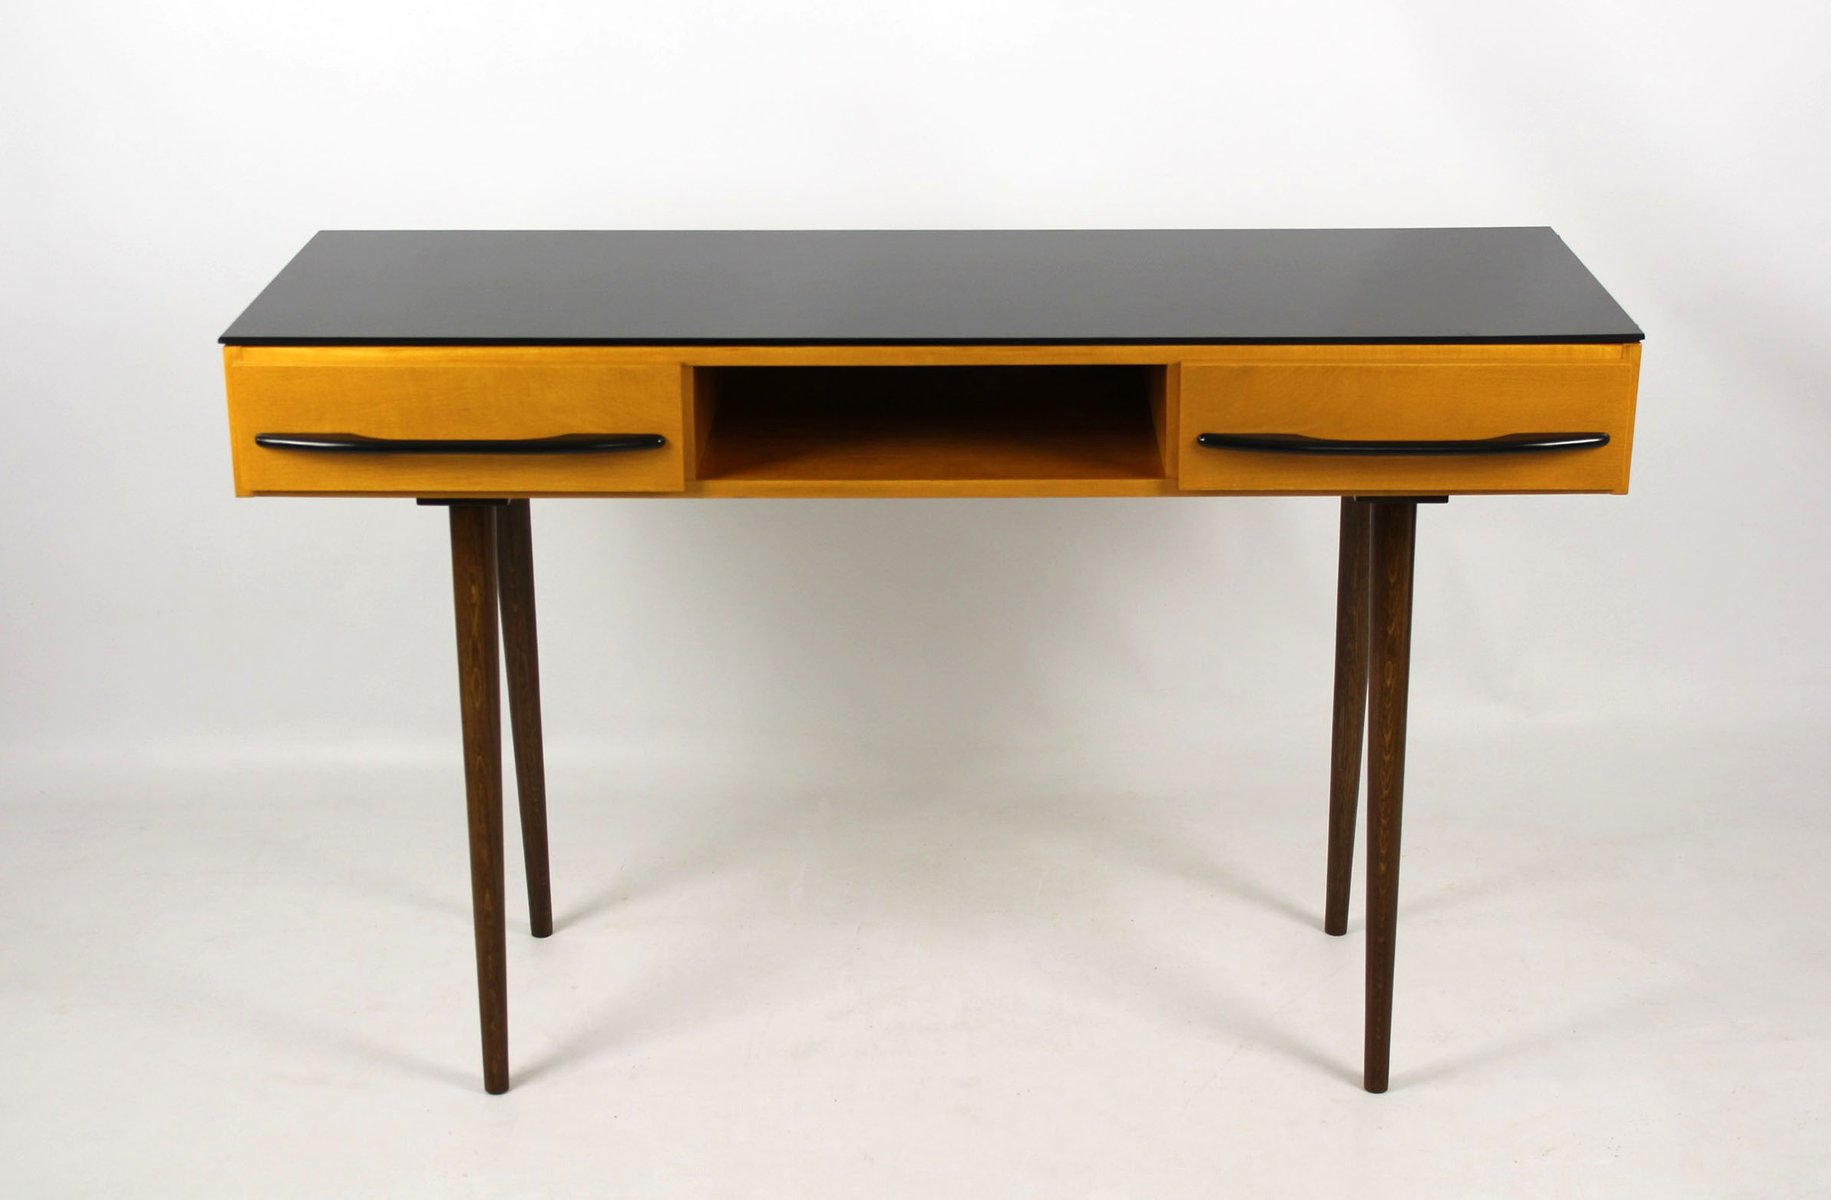 Mid century desk or console table by m po r for up bu ovice 1960s for sale at pamono - Used console table for sale ...